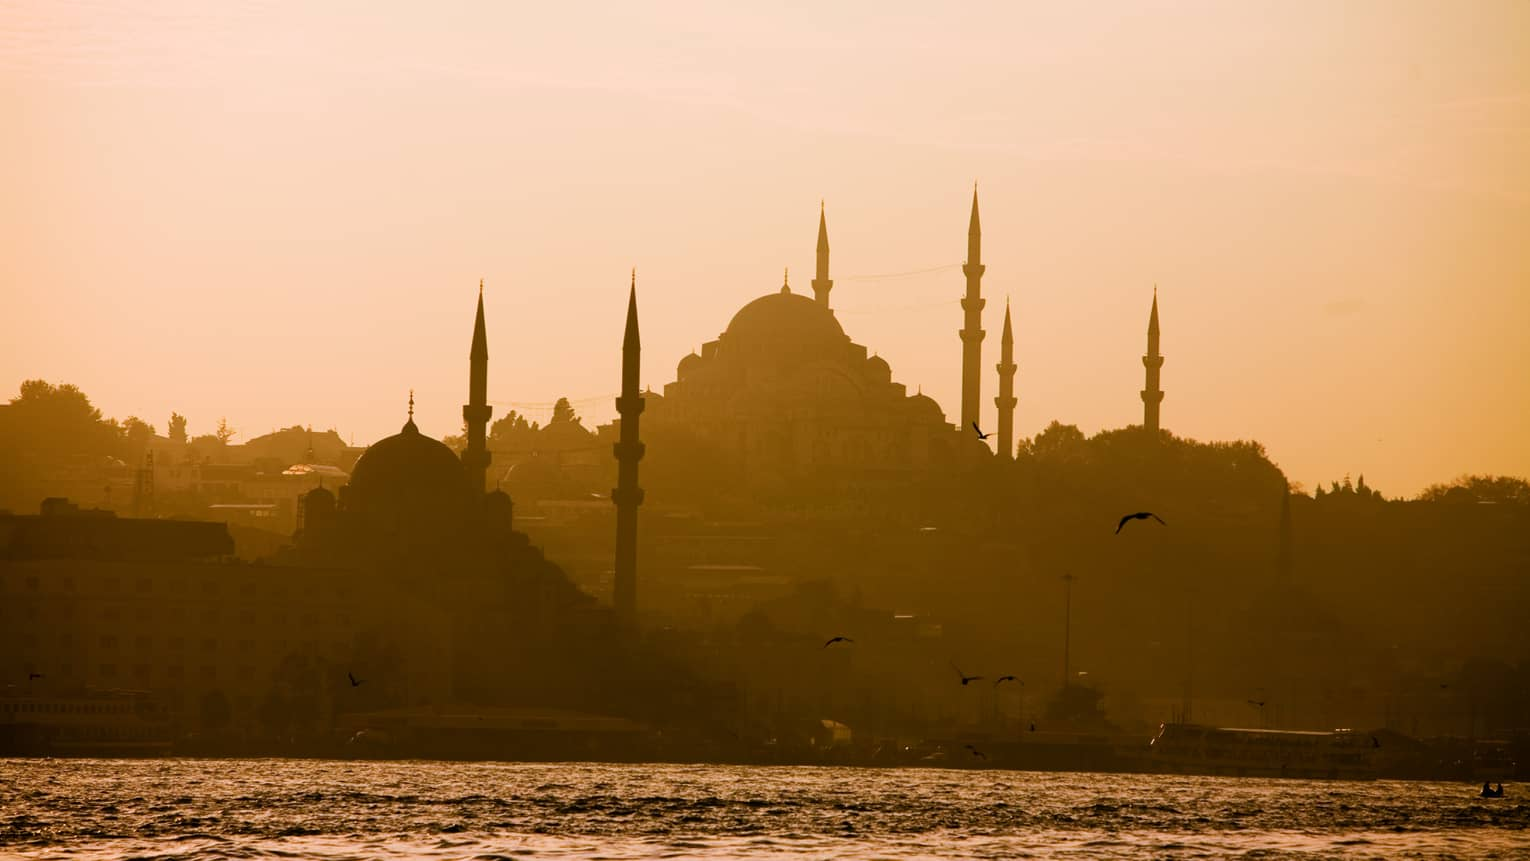 Silhouette of domed Blue Mosque in Istanbul at sunset